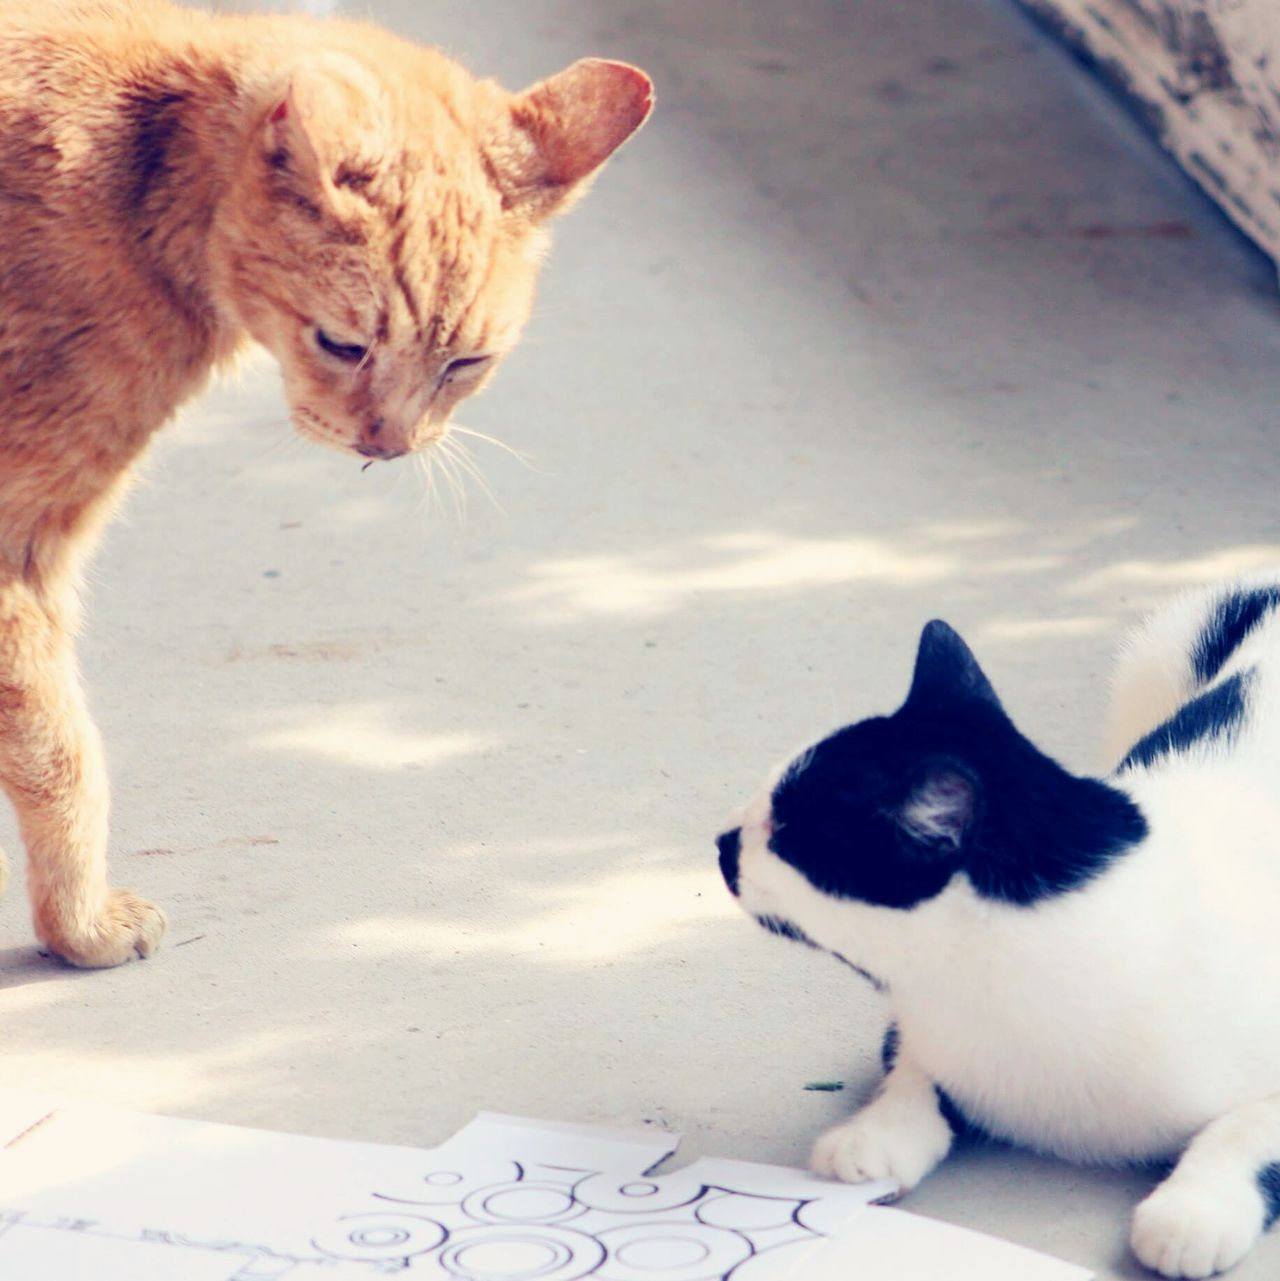 Preparing to strike: In the ring we have old red Kitty, age 19, vs the new kitty age 1. The old man seeks to put the whippersnapper in his place 😀 Showcase: December Cats Catfight Cat Faceoff Confrontation Confraternização Orange Black And White Color Photography Two Animals Sunny Porch